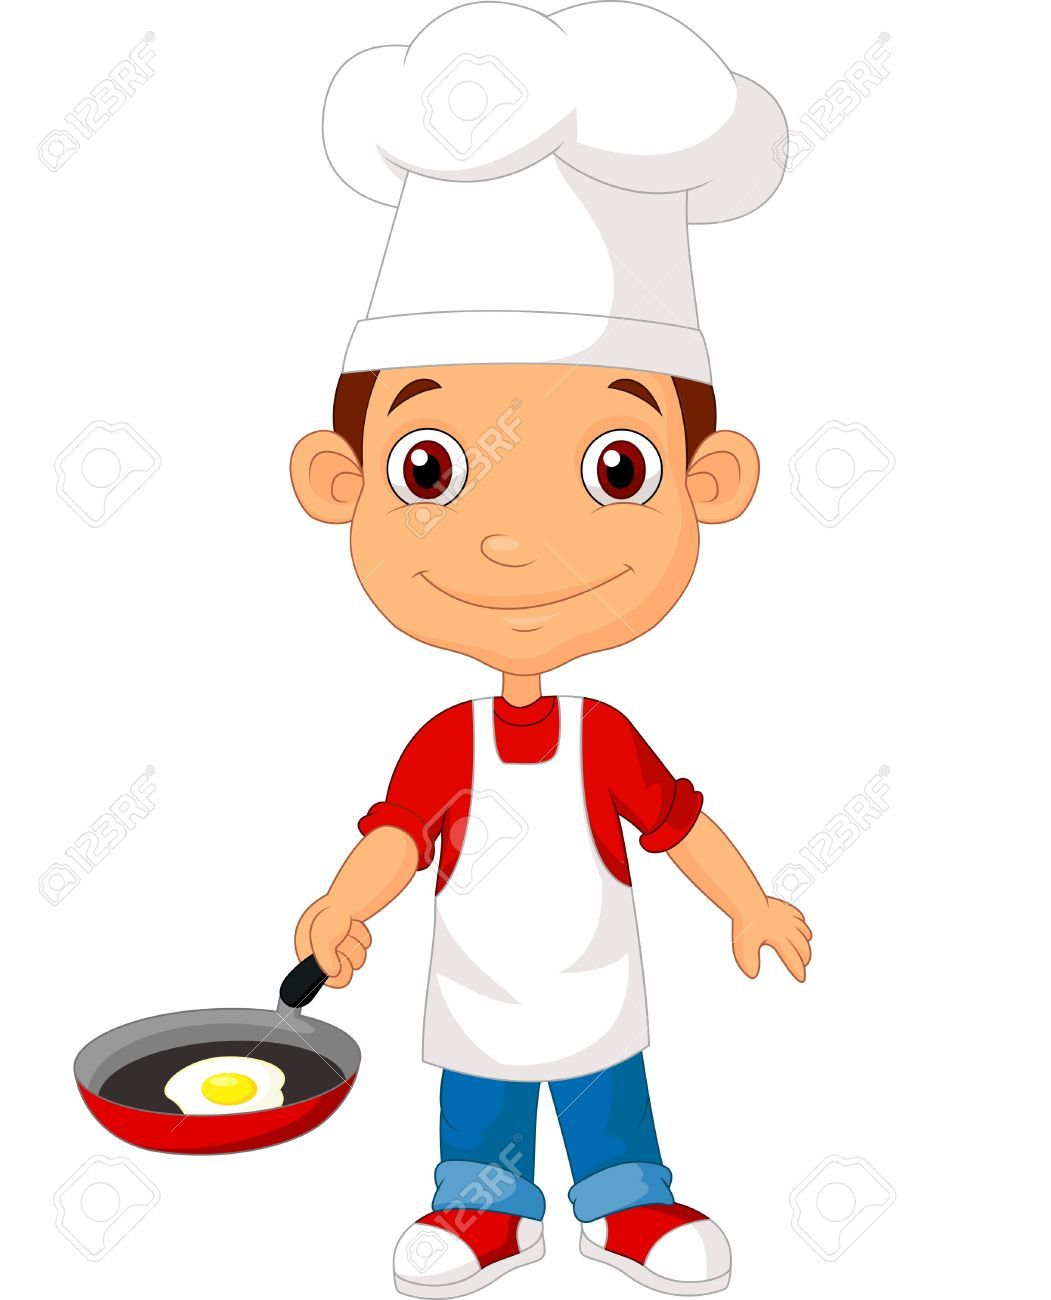 Asteroid clipart kid. Kids cooking cartoons buscar